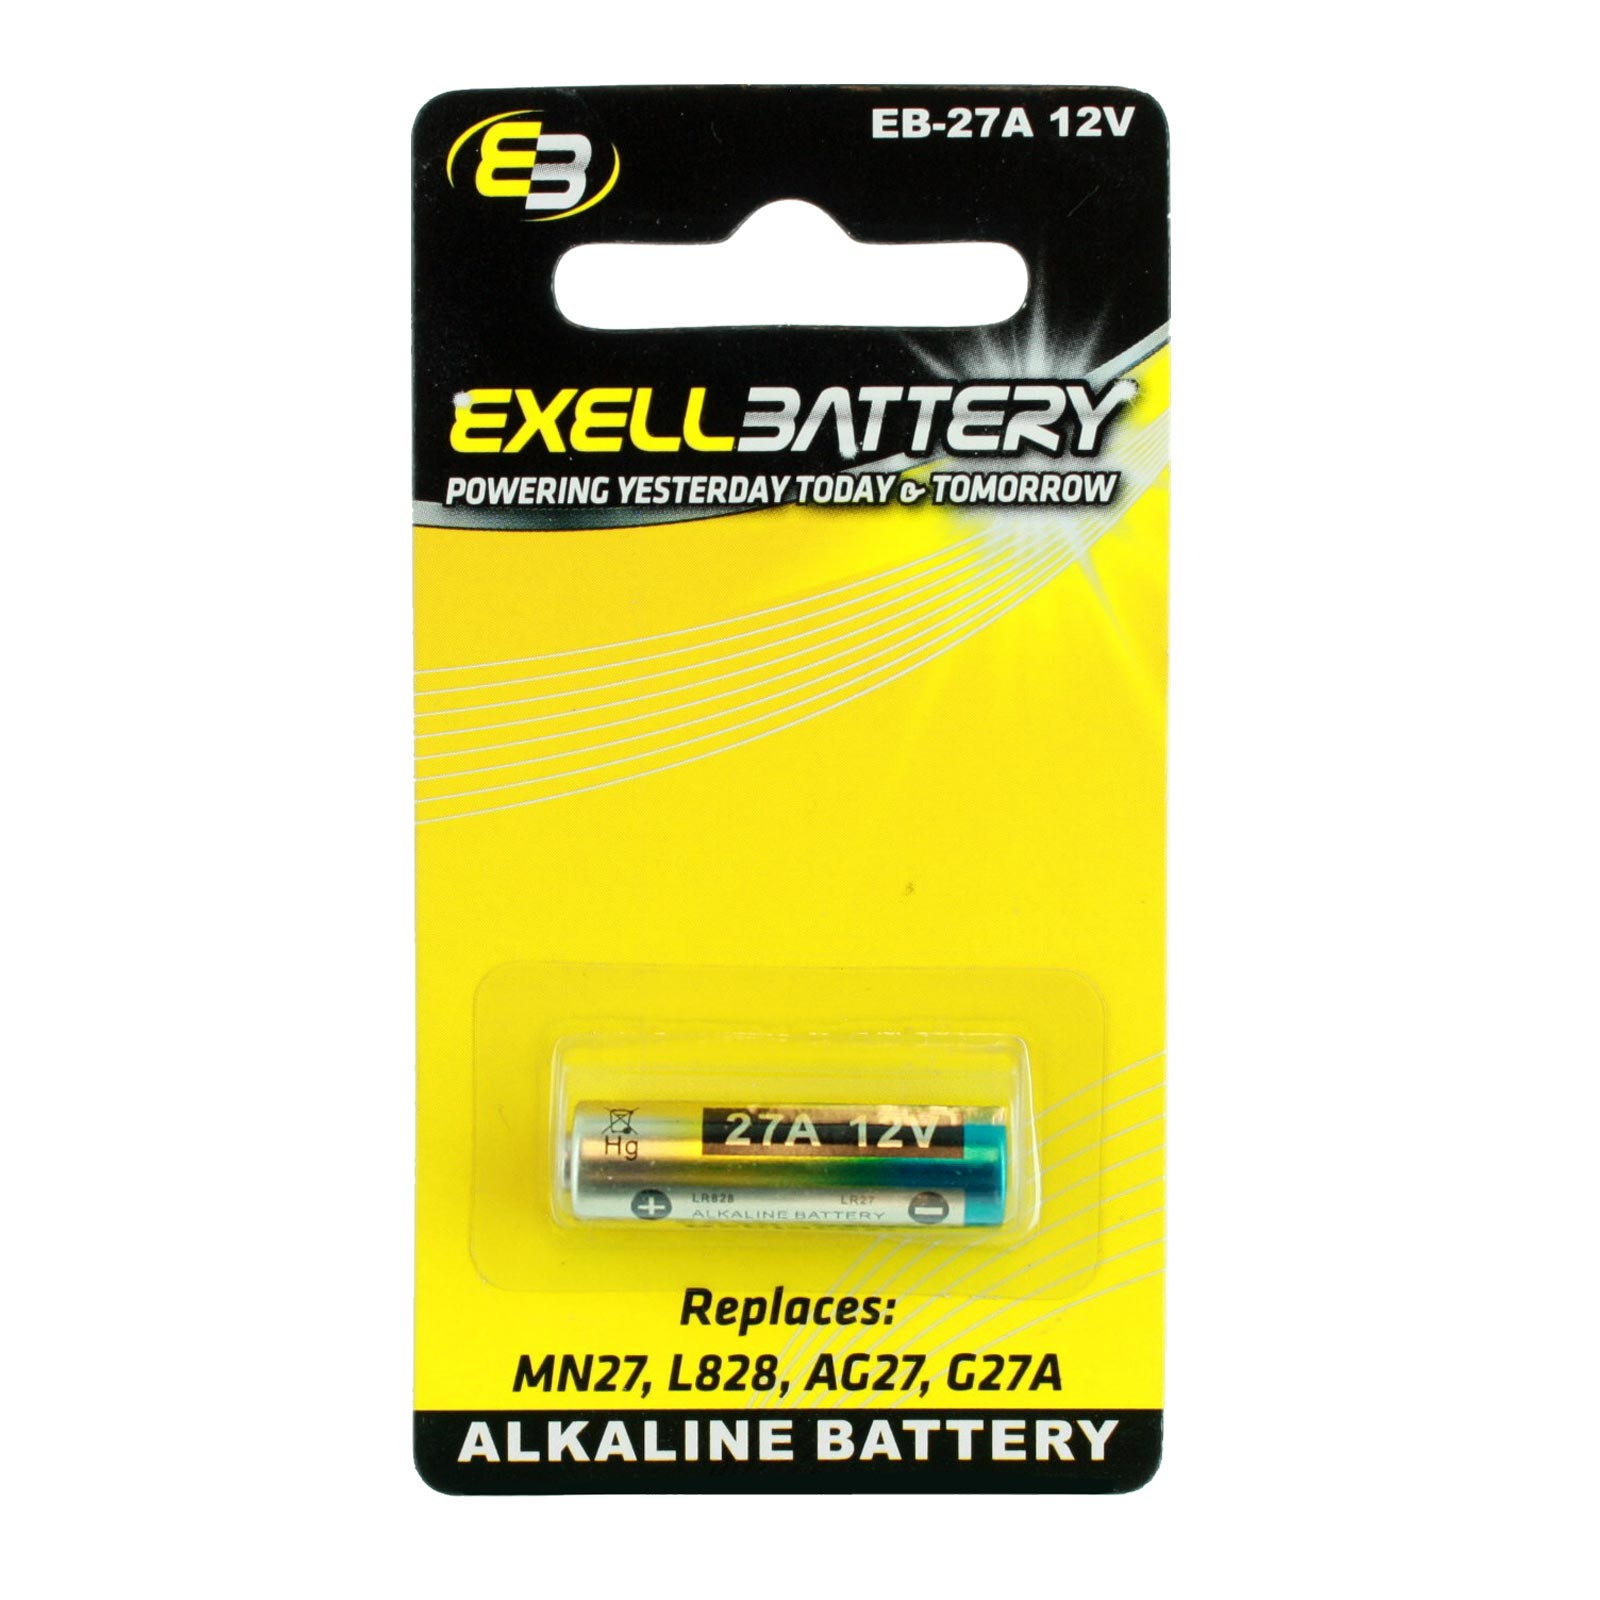 Exell EB-27A Alkaline 12V Battery Replaces MN27 L828 AG27 G27 FAST USA SHIP | eBay